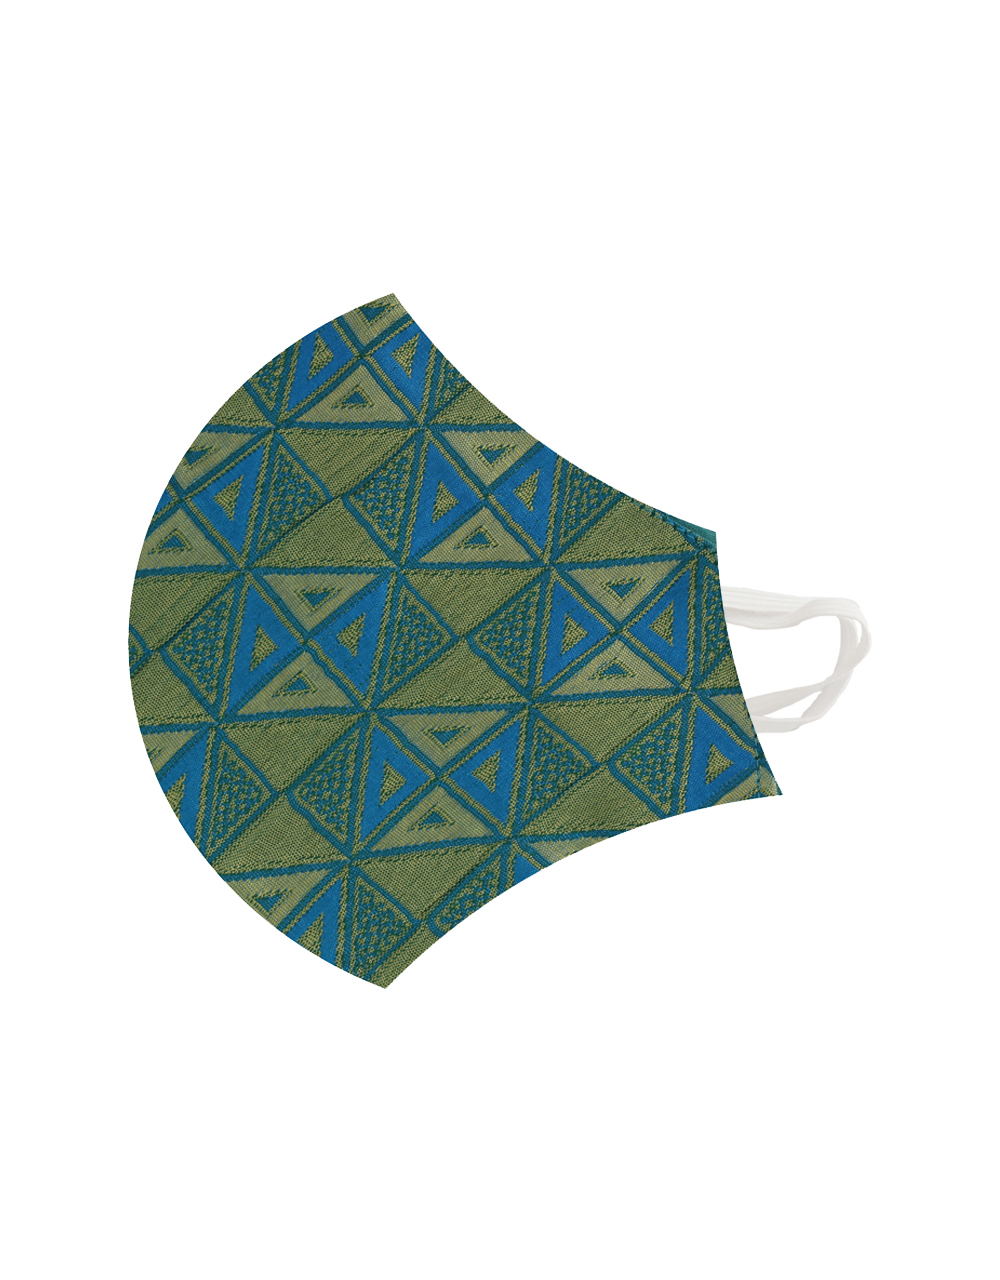 Golden And Blue Colour Tringle Designed Brocatelle Fabric Face Mask.